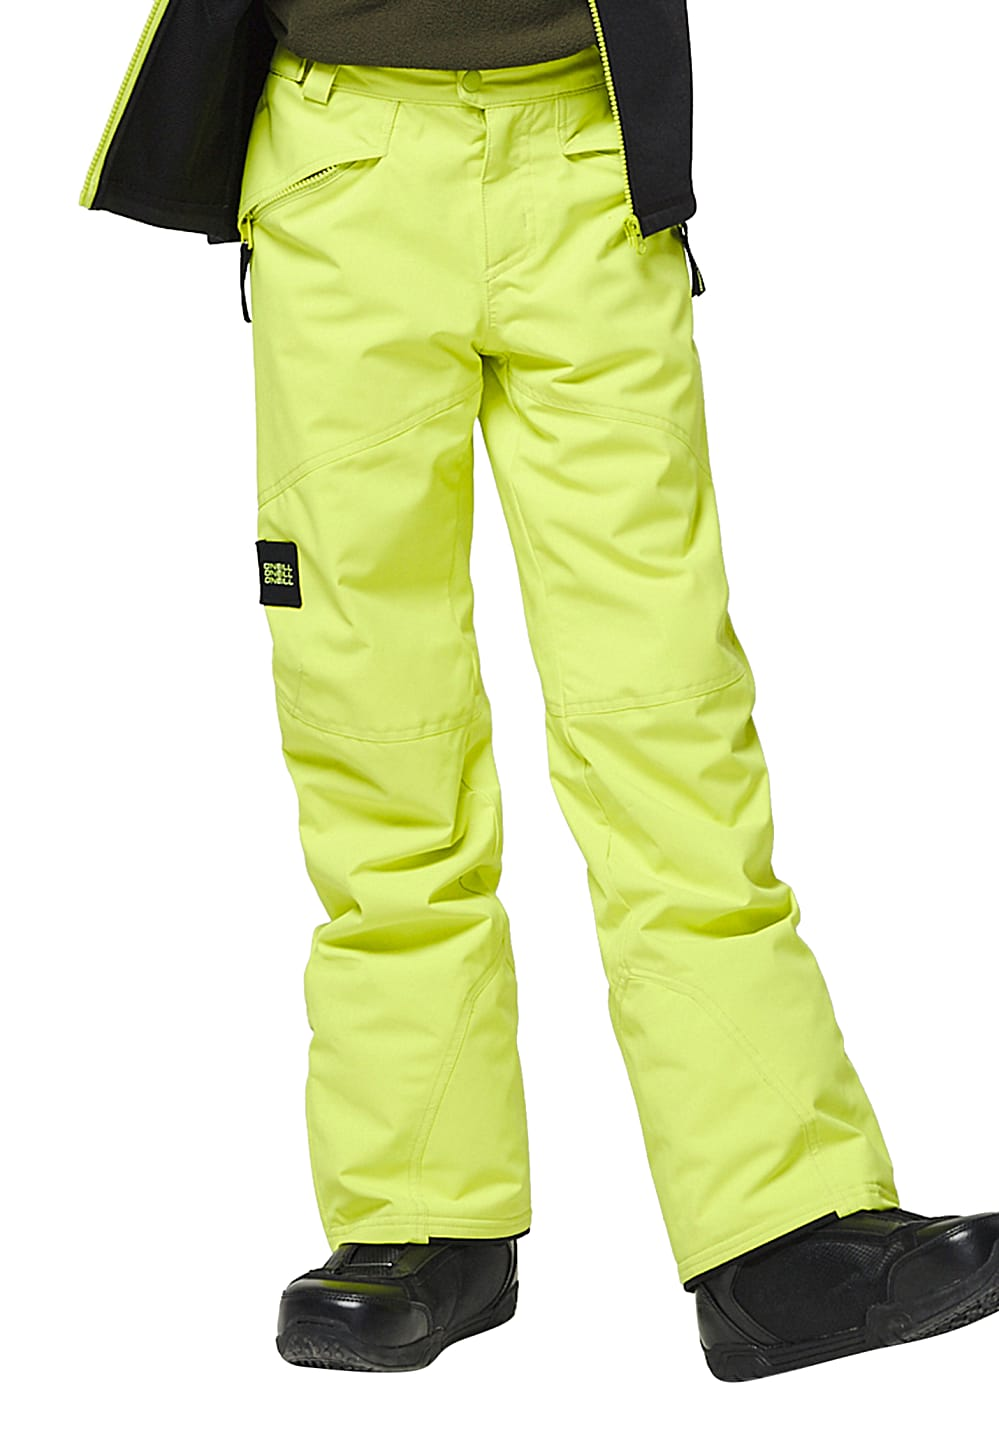 Boysregenwinter - O'Neill Anvil Snowboardhose für Jungs Gelb - Onlineshop Planet Sports